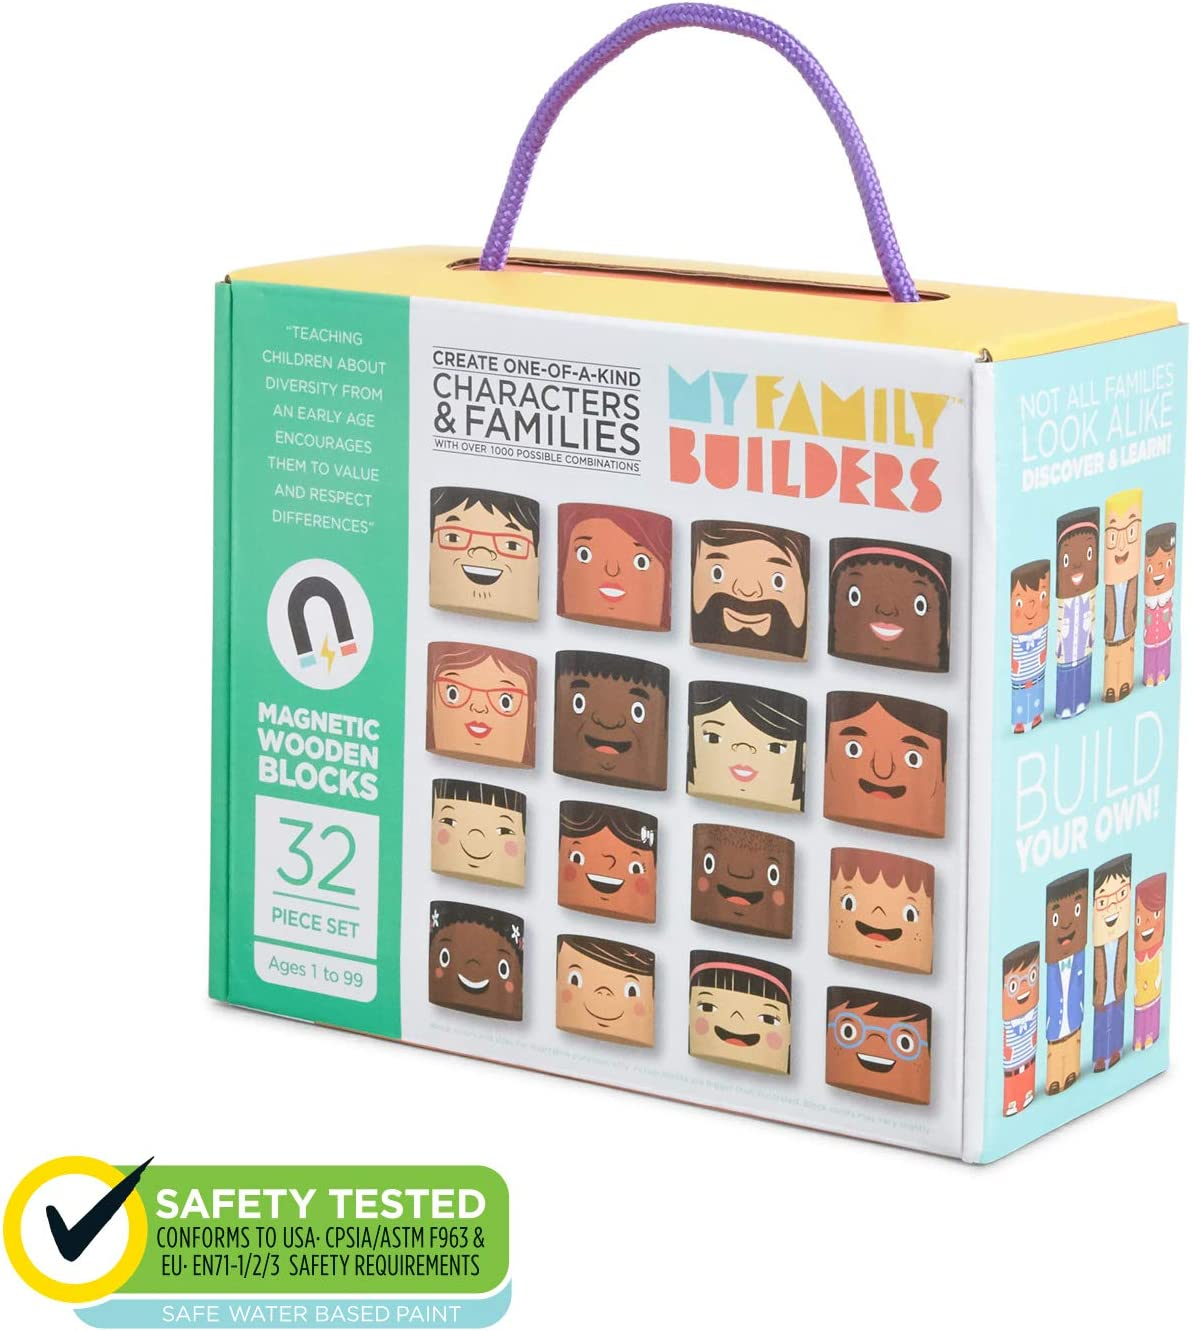 My Family Builders Outfits Expansion /& Replacement Diversity Building Blocks Set Build Little People Figures for Cultural Inclusion and Empathy 16 Piece Wooden Blocks for Multiracial Play Figures